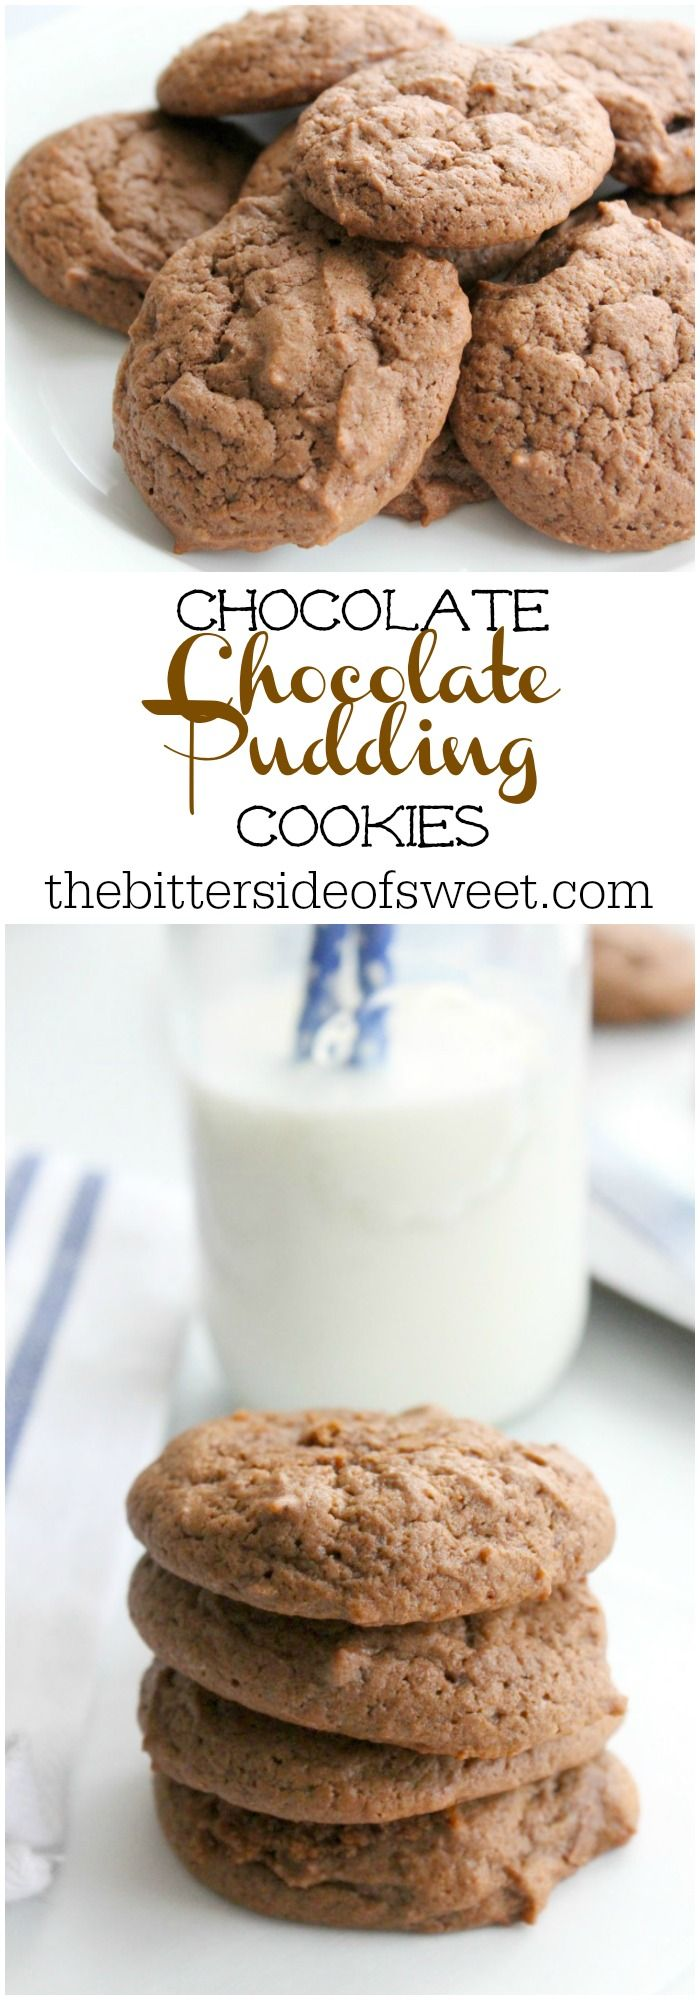 Chocolate Chocolate Pudding Cookies | The Bitter Side of Sweet